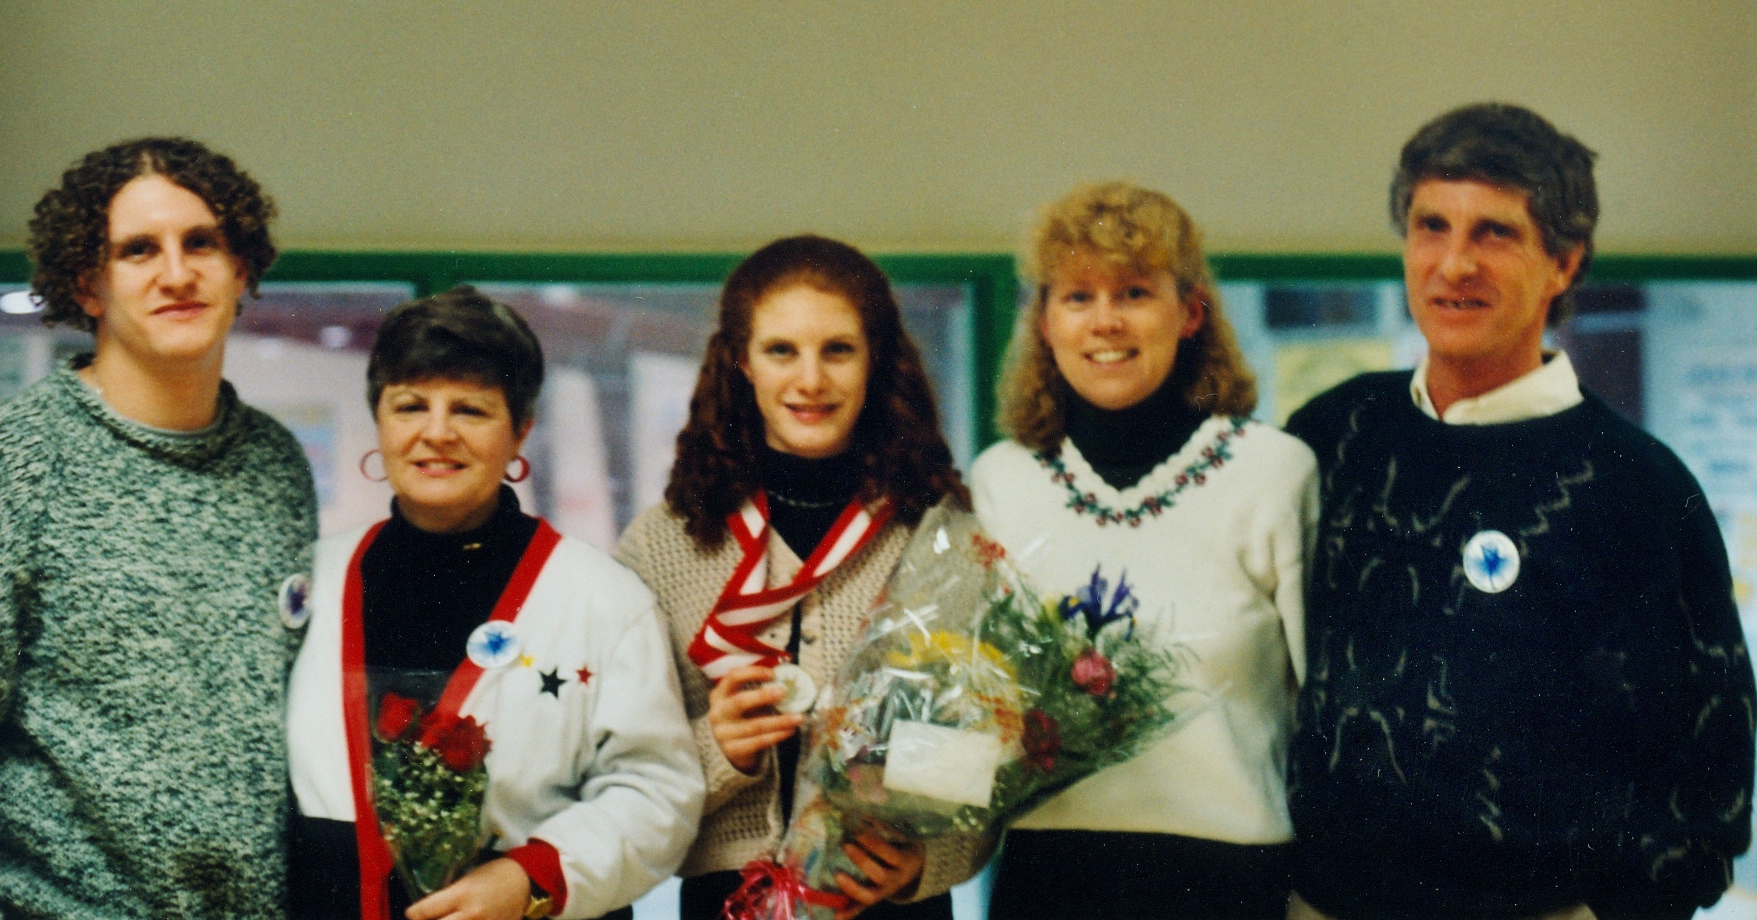 Stefanie Partridge, a 1997 Canadian Silver Medalist with brother Jason, Mother Cathy, Coach Nancy Cunnyworth and father Cliff.